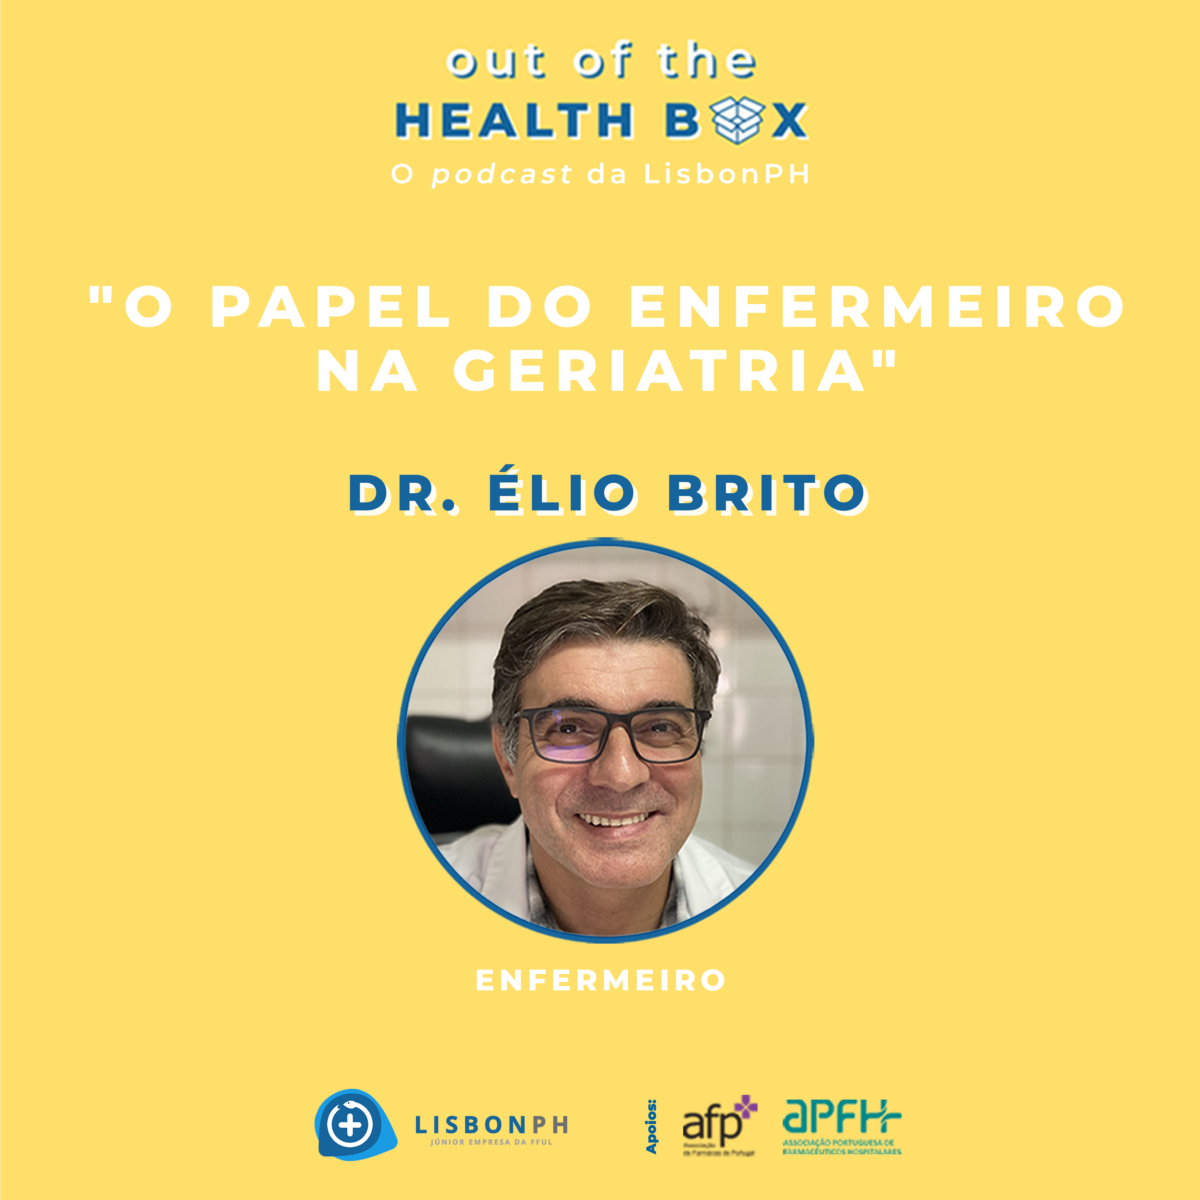 Out of the Health Box - Episódio 3